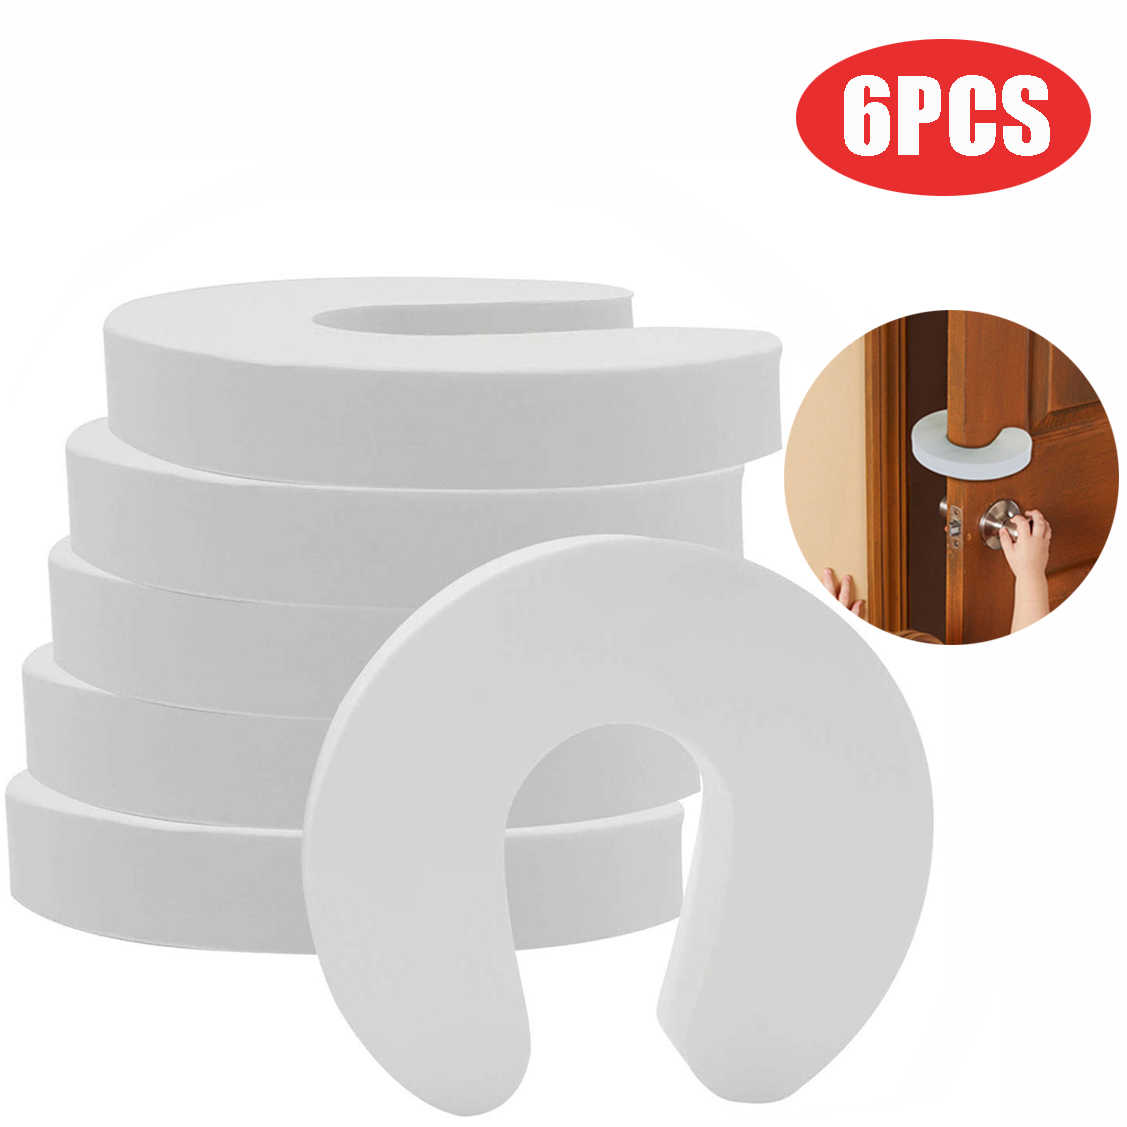 6PCS Doorways Gates Decorative Door Baby Care Soft Reusable C Shaped Door Safety Finger Guards for Cabinet Drawer Door #40